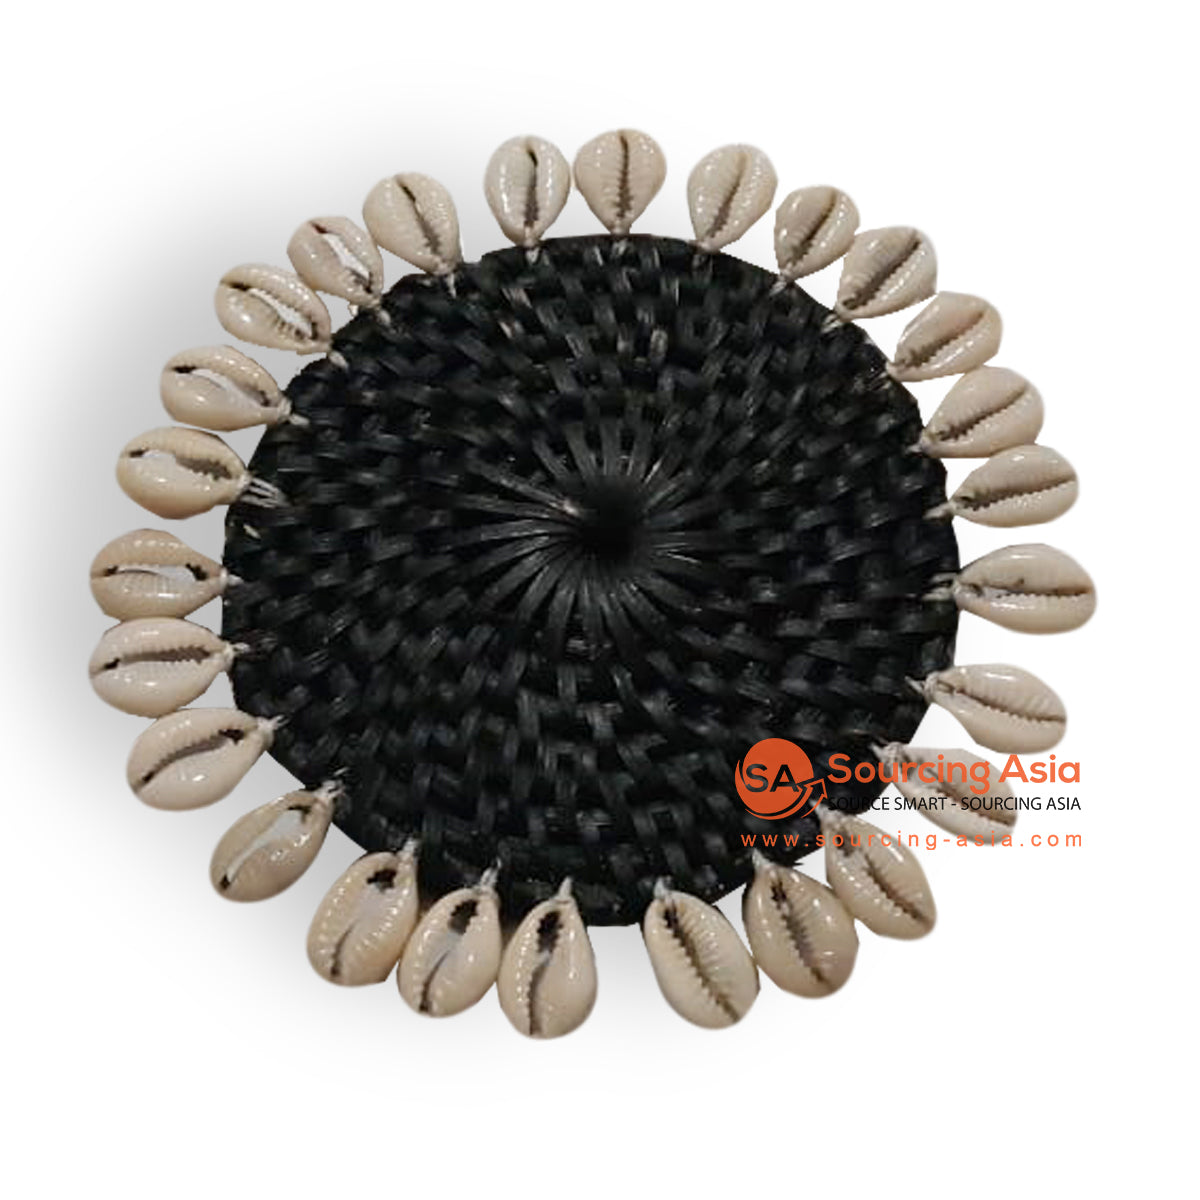 ALI062-1 RATTAN AND SHELL COASTER